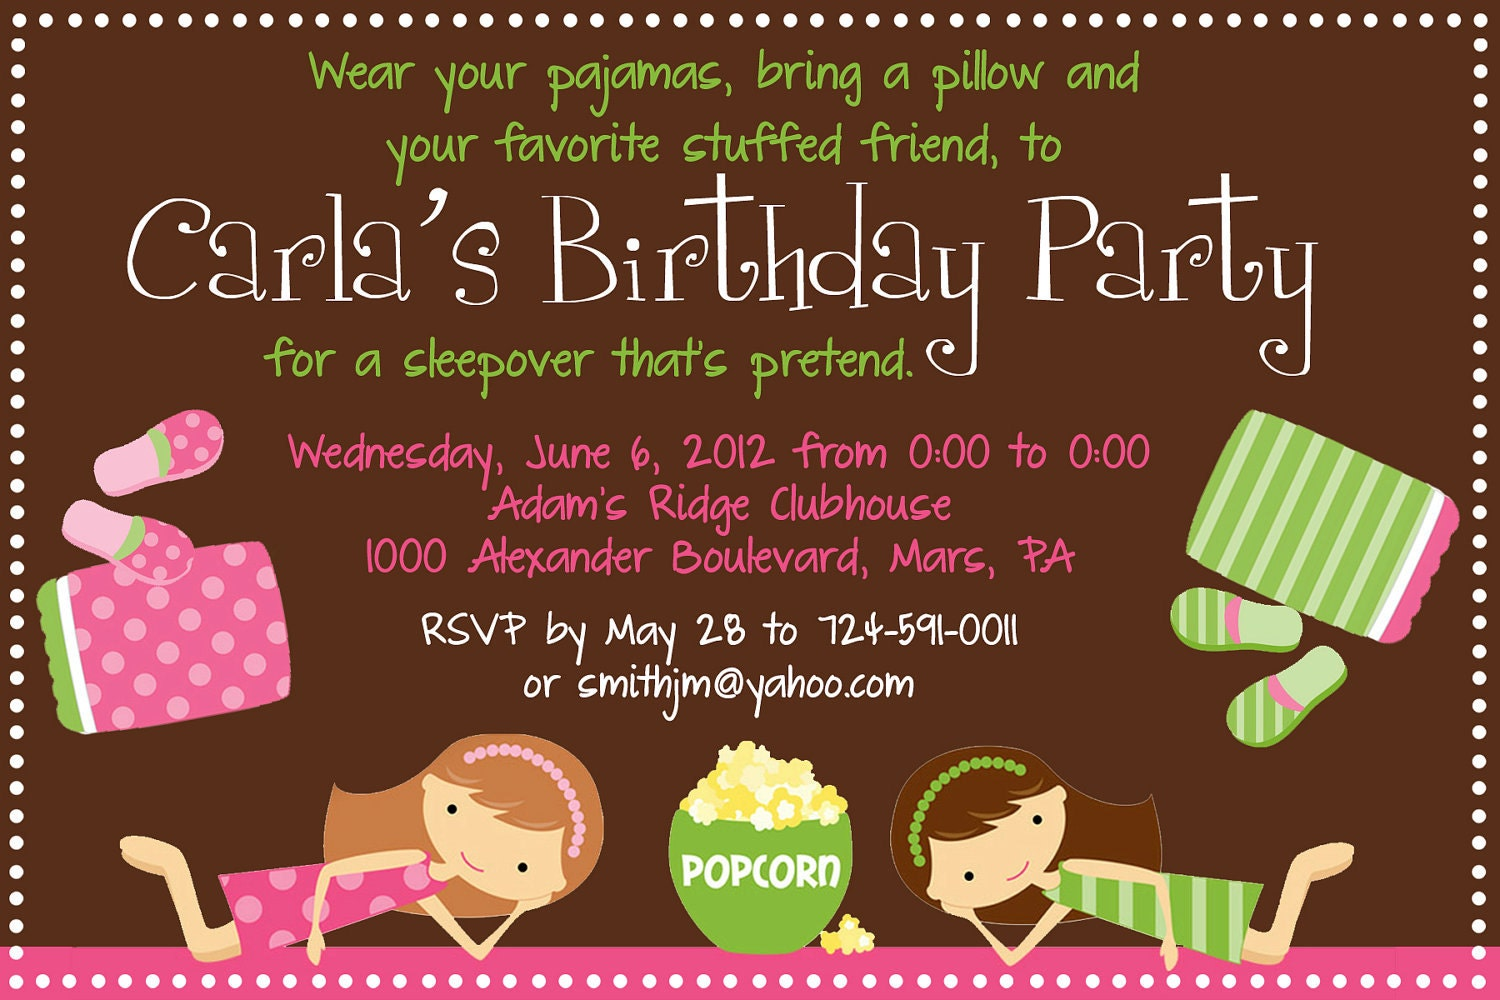 Famous Pyjama Party Invites Images - Invitations and Announcements ...